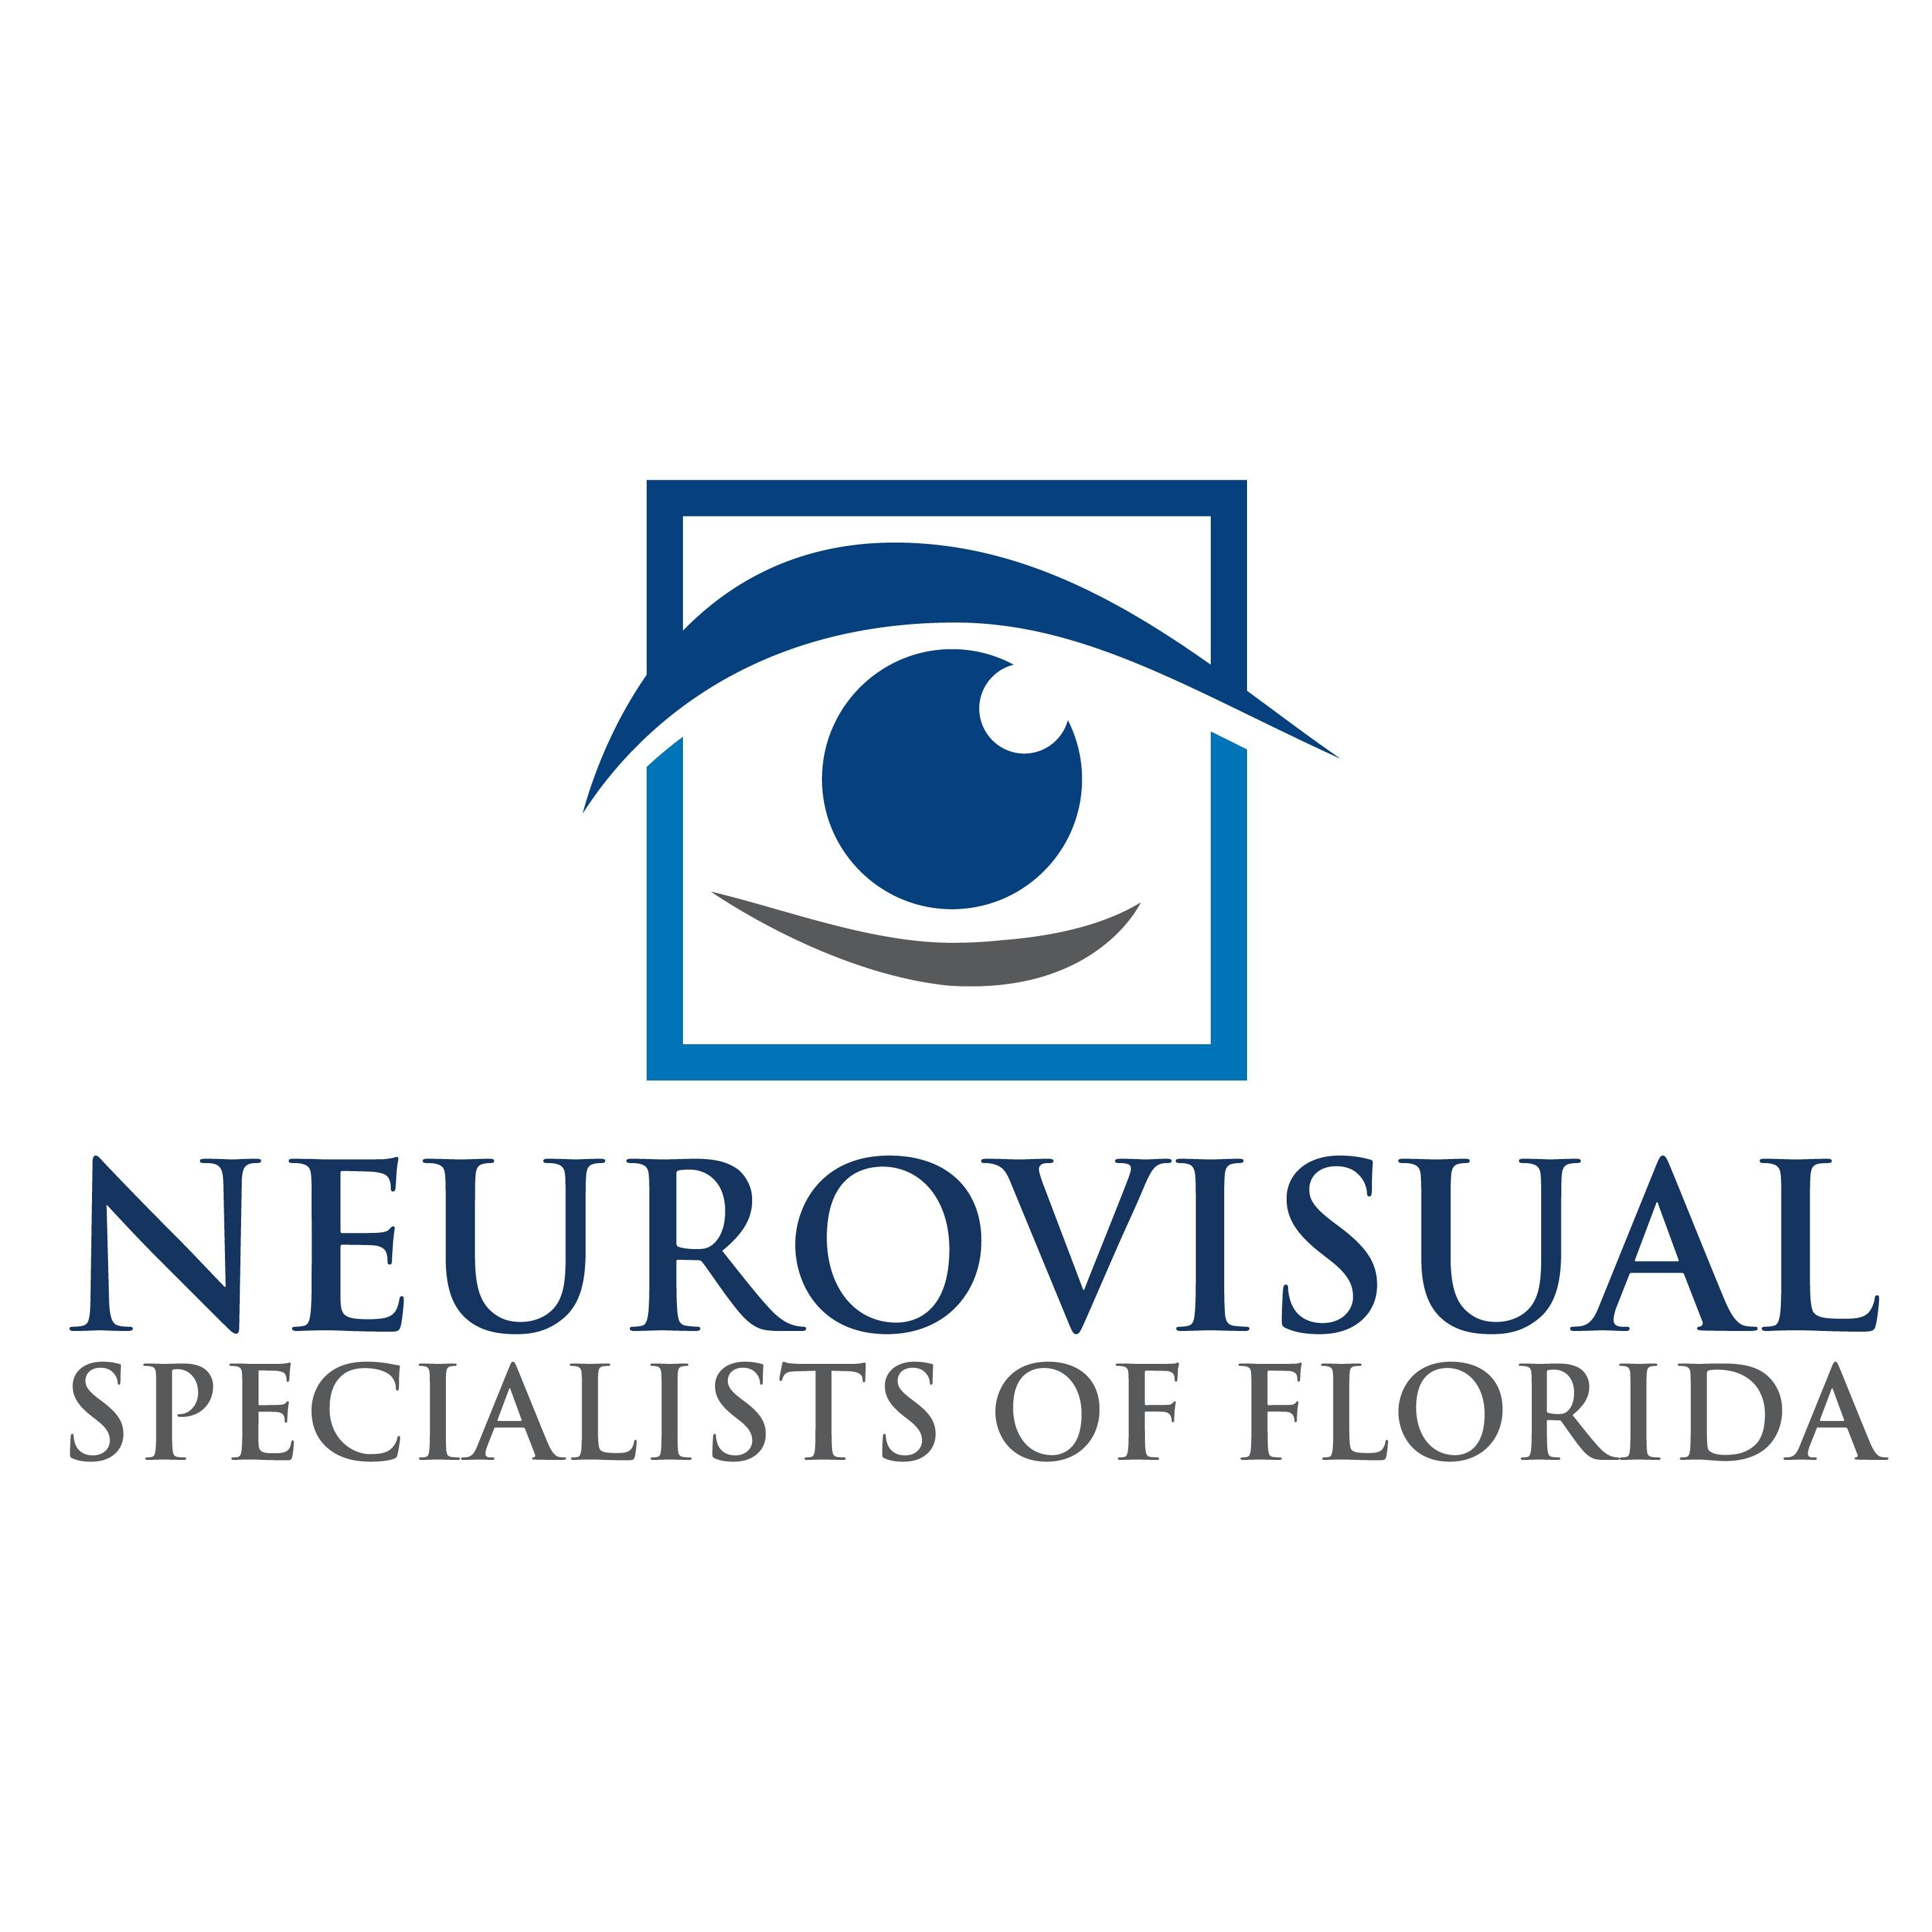 NeuroVisual Specialists of Florida and iSee VisionCare image 0